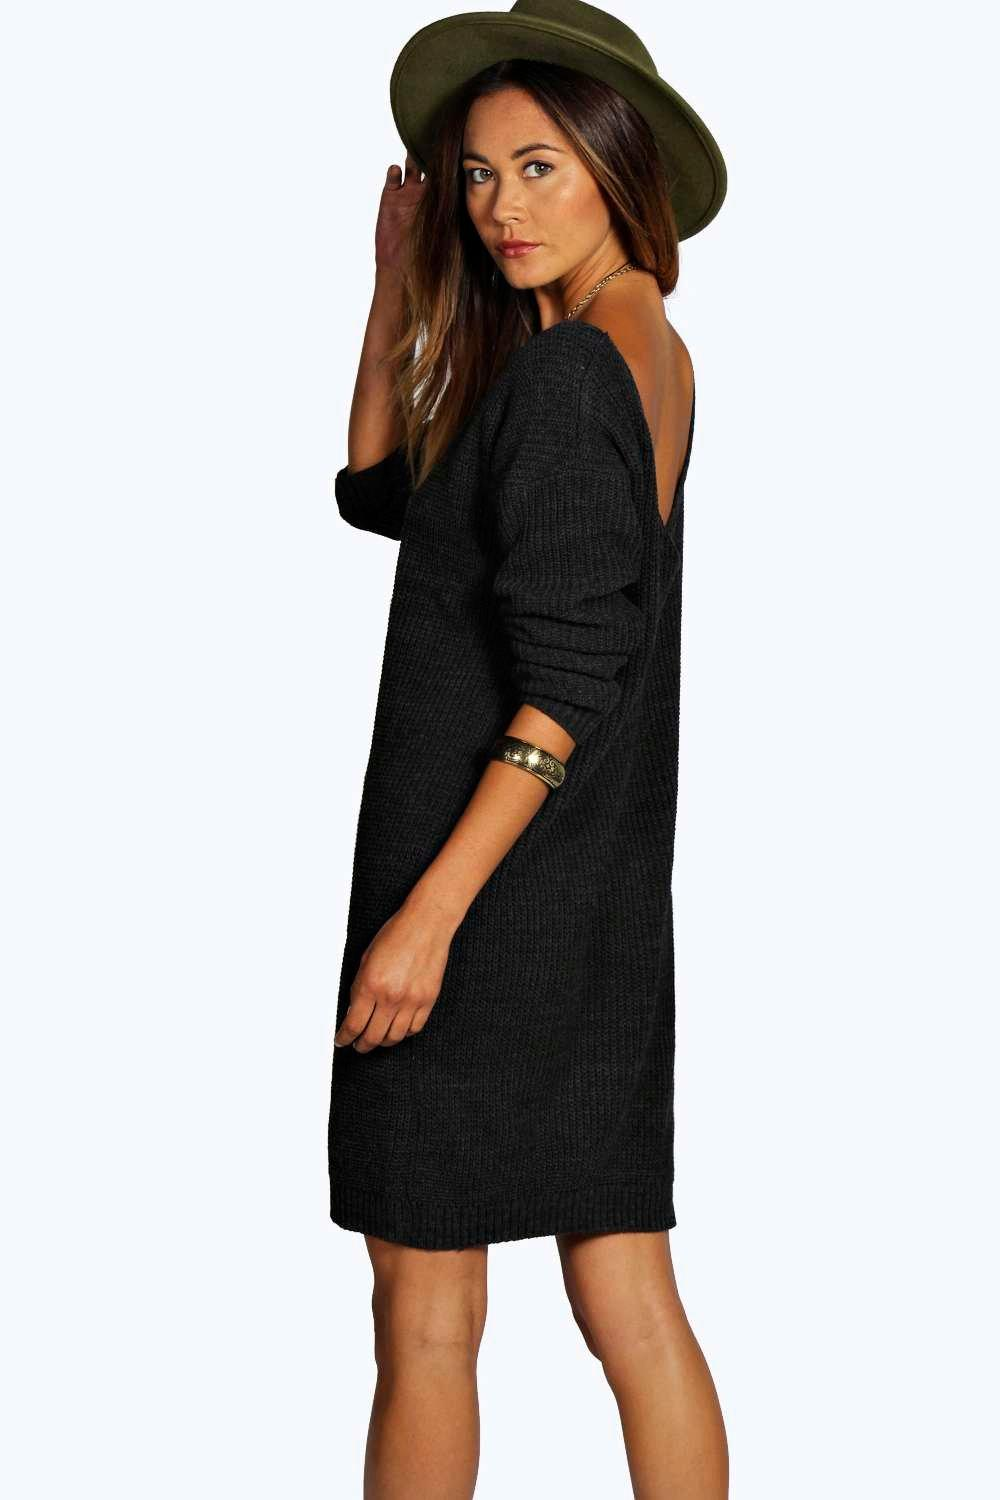 Jumper Dresses A must-have to keep chic in cold weather; the jumper dress. boohoo have a wide range of knitted dresses including ribbed midi styles, short cable knit dresses and distressed options for a grungier take on the trend.